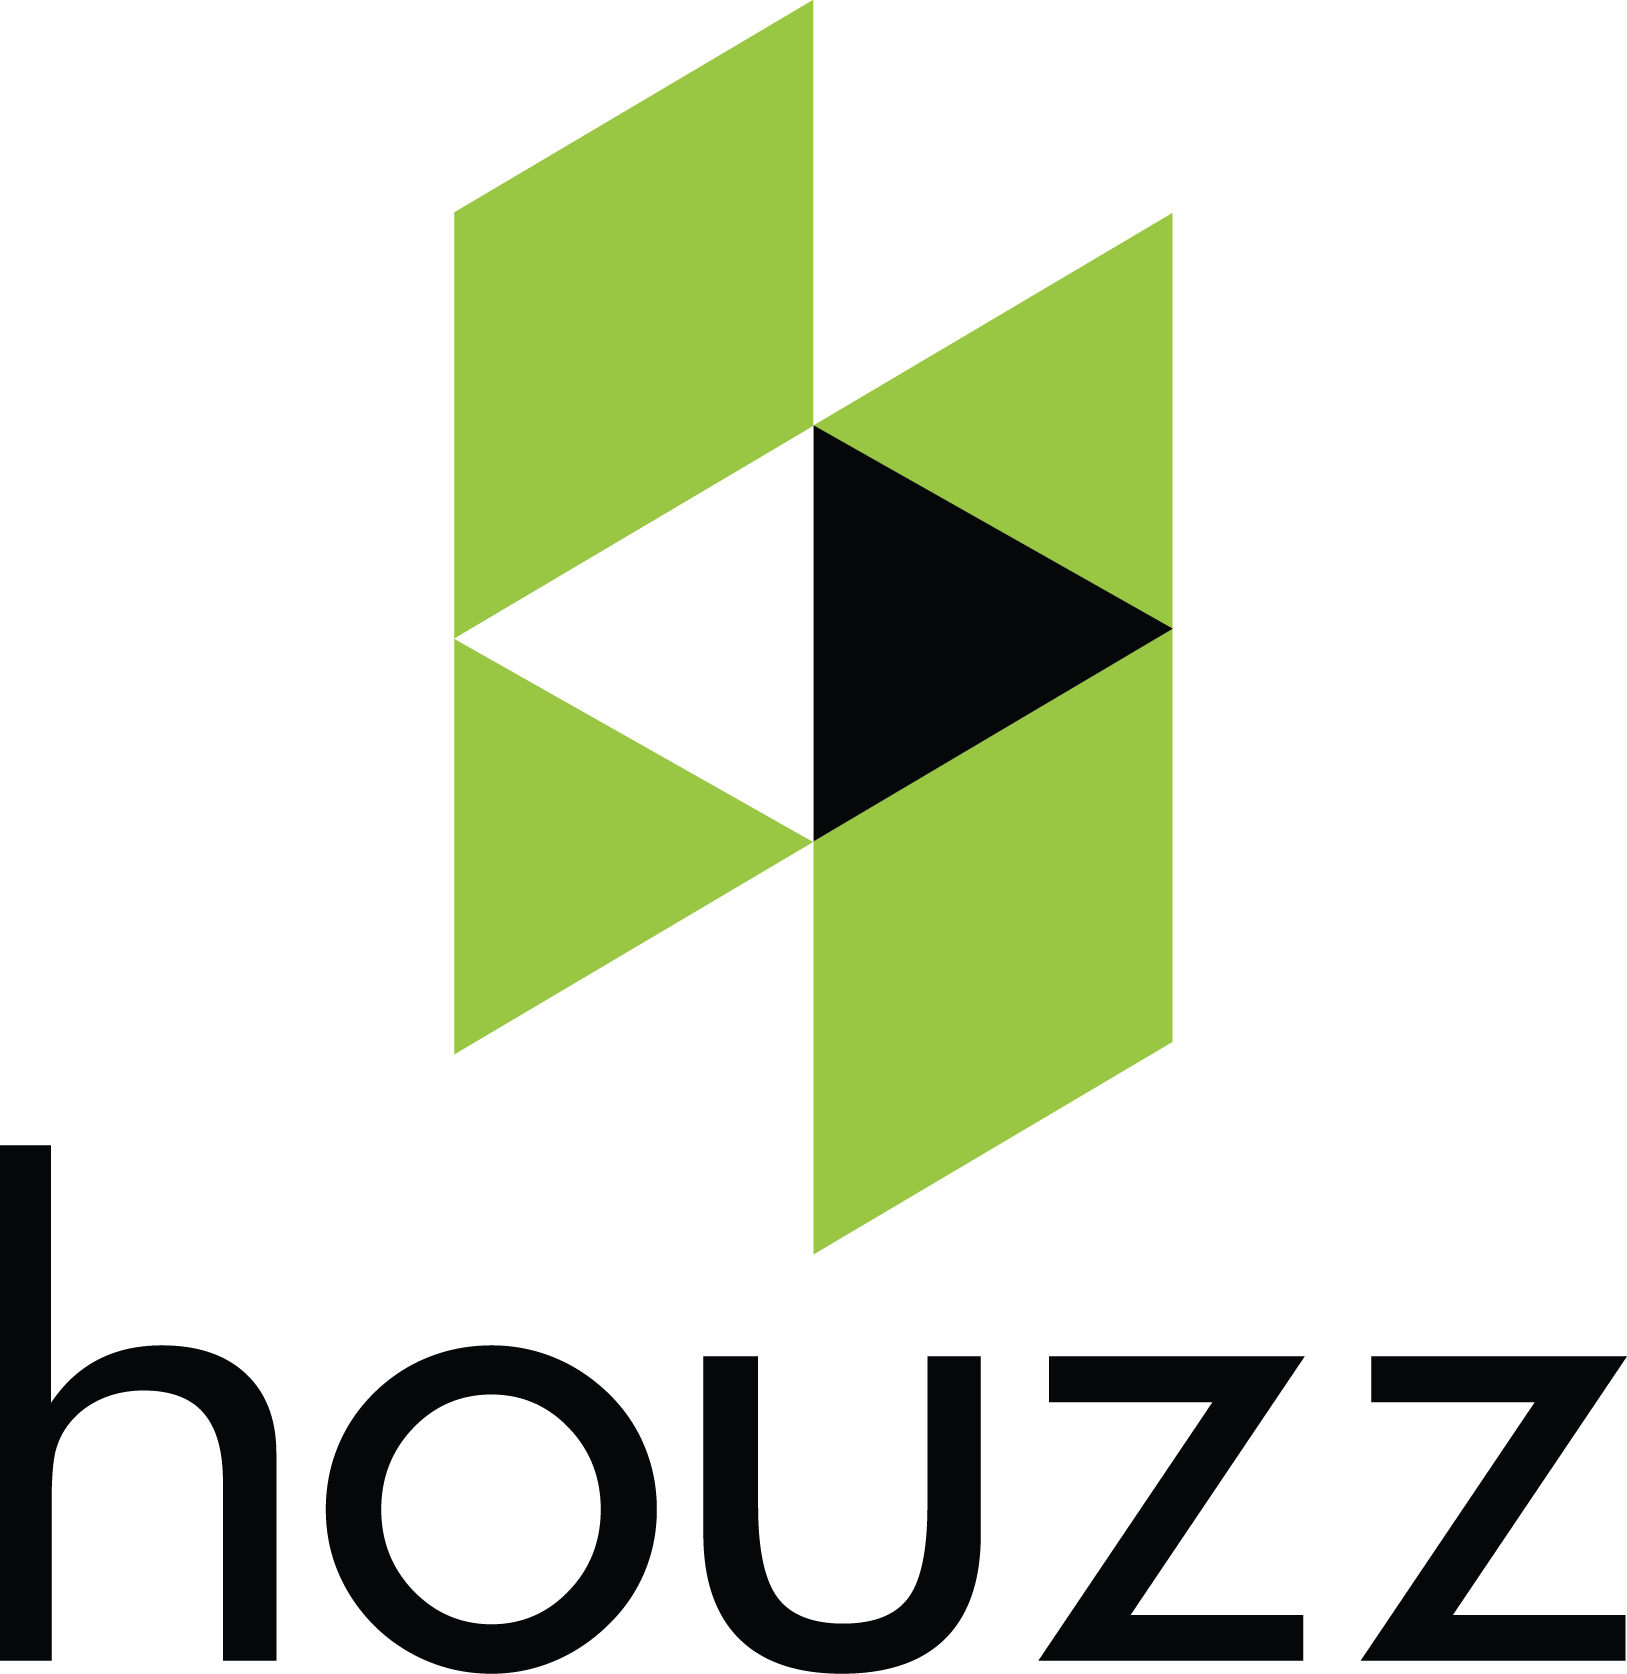 The 2014 Houzz and Home survey results are in! Check out what ...